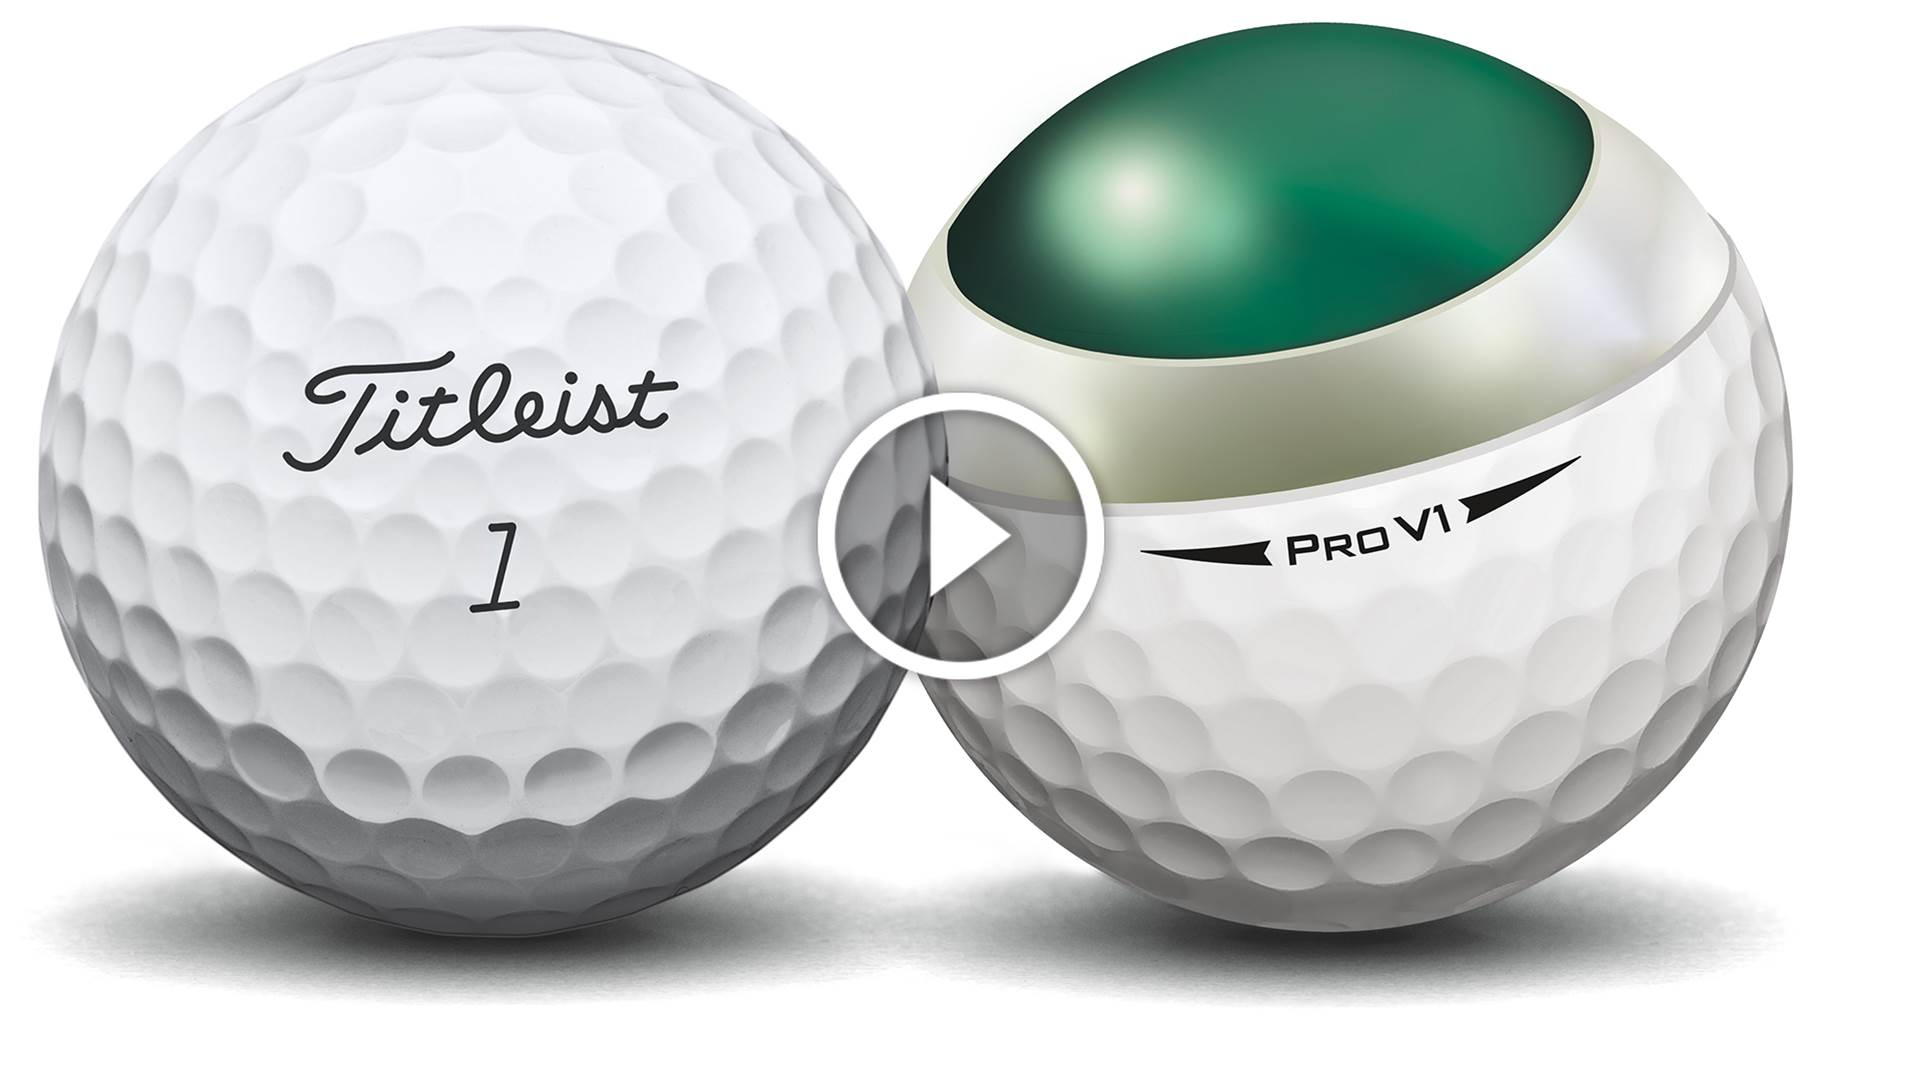 VIDEO: Inside the new Titleist Pro V1 and Pro V1x balls